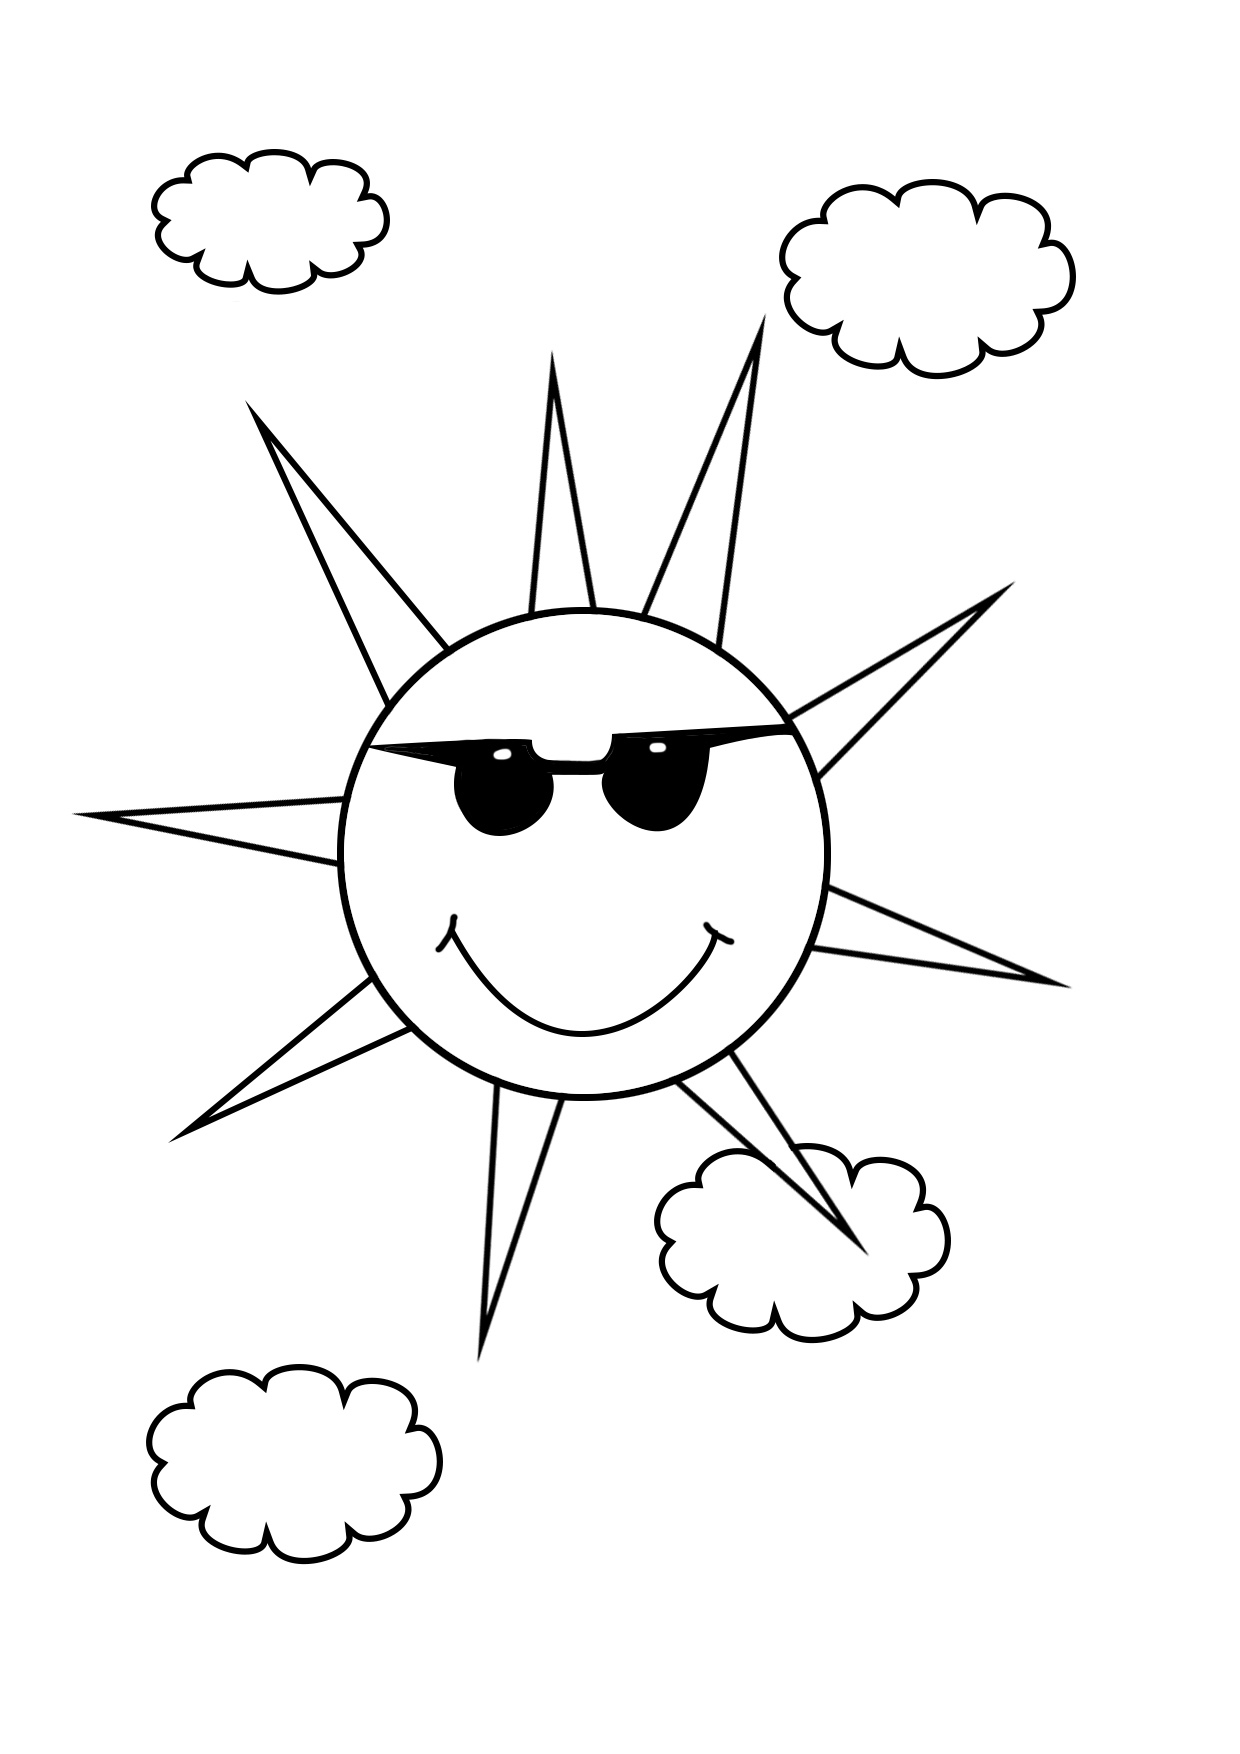 Colouring pages for sun - Sun Coloring Pages With Sunglasses And Clouds